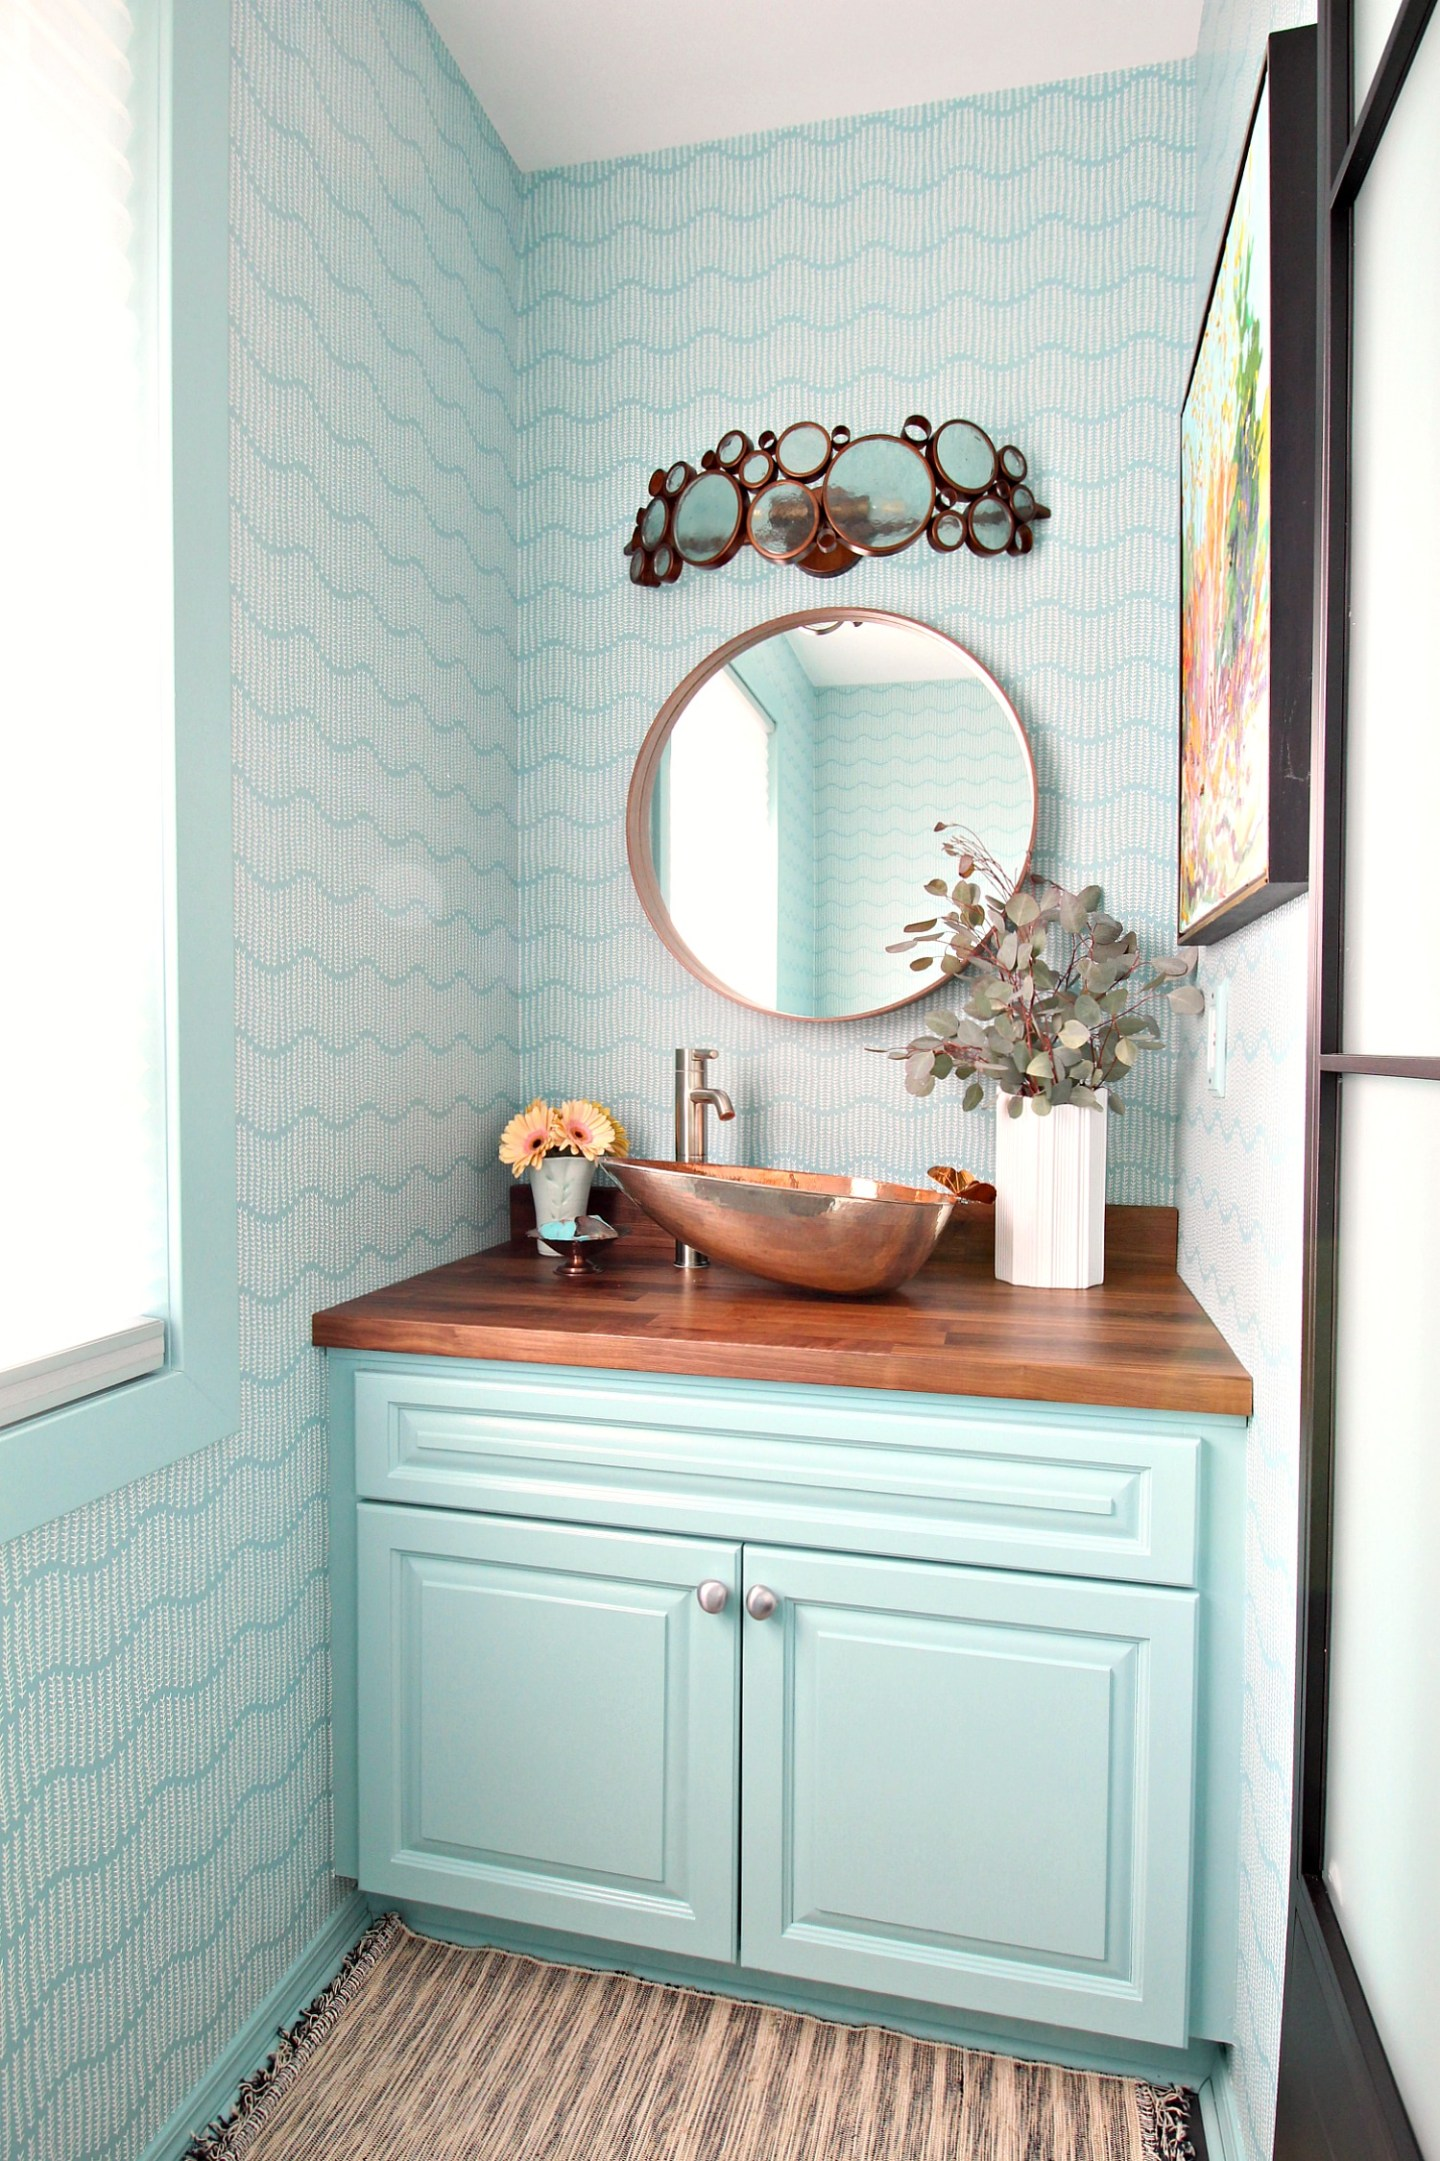 Turquoise and Copper Powder Room Makeover REVEAL | Handmade Copper Sink, Sprigs on Ocean Wallpaper, Walnut Counters, Colorful DIY Bathroom Makeover Before + After